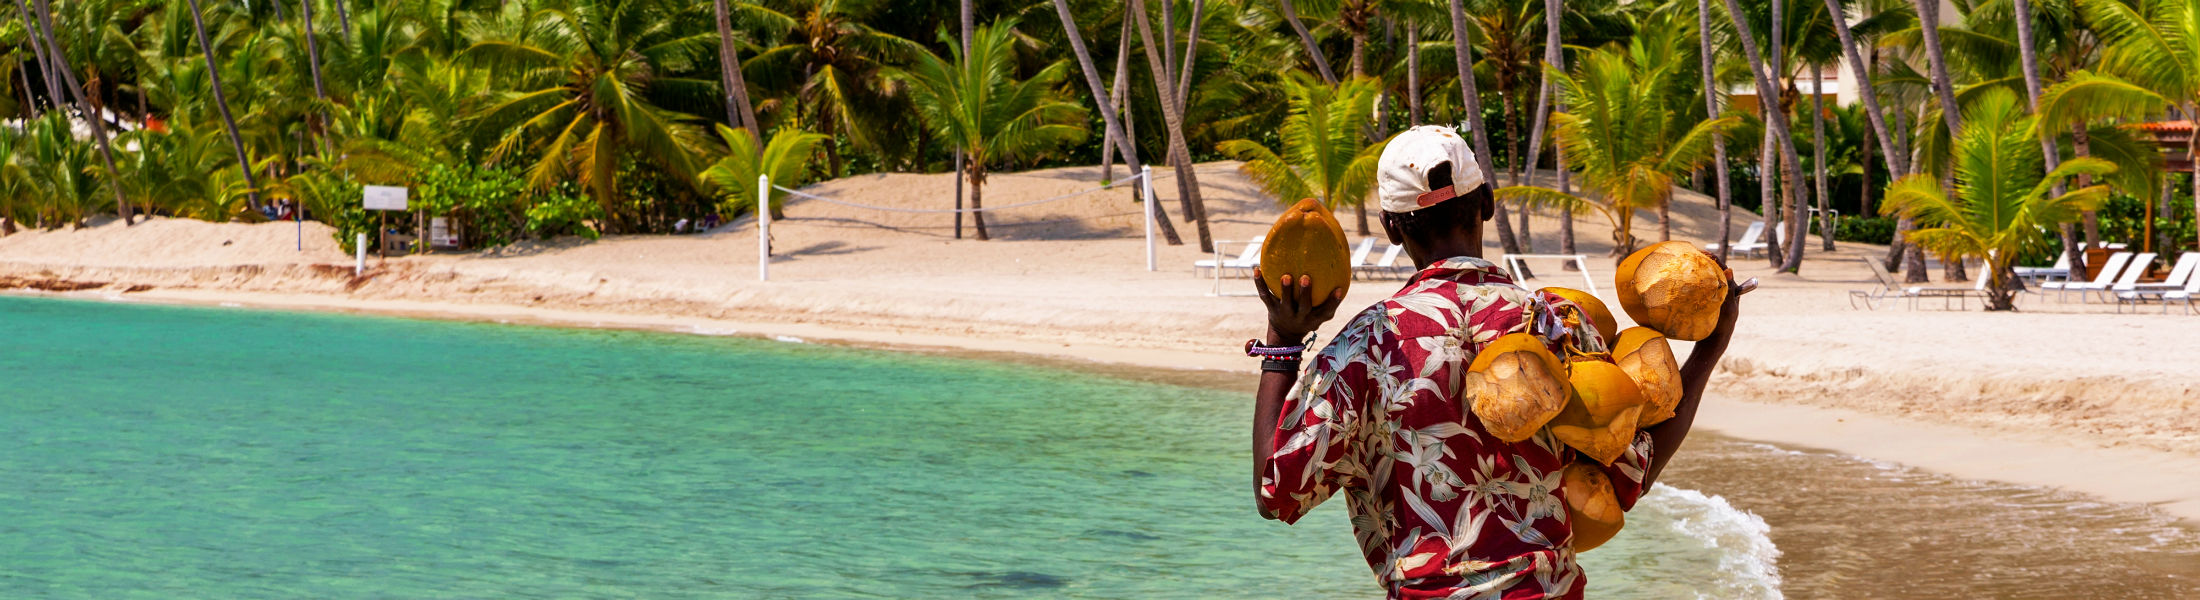 Coconut saler walking by the sea in the famous Juan Dolio Beach of Dominican Republic